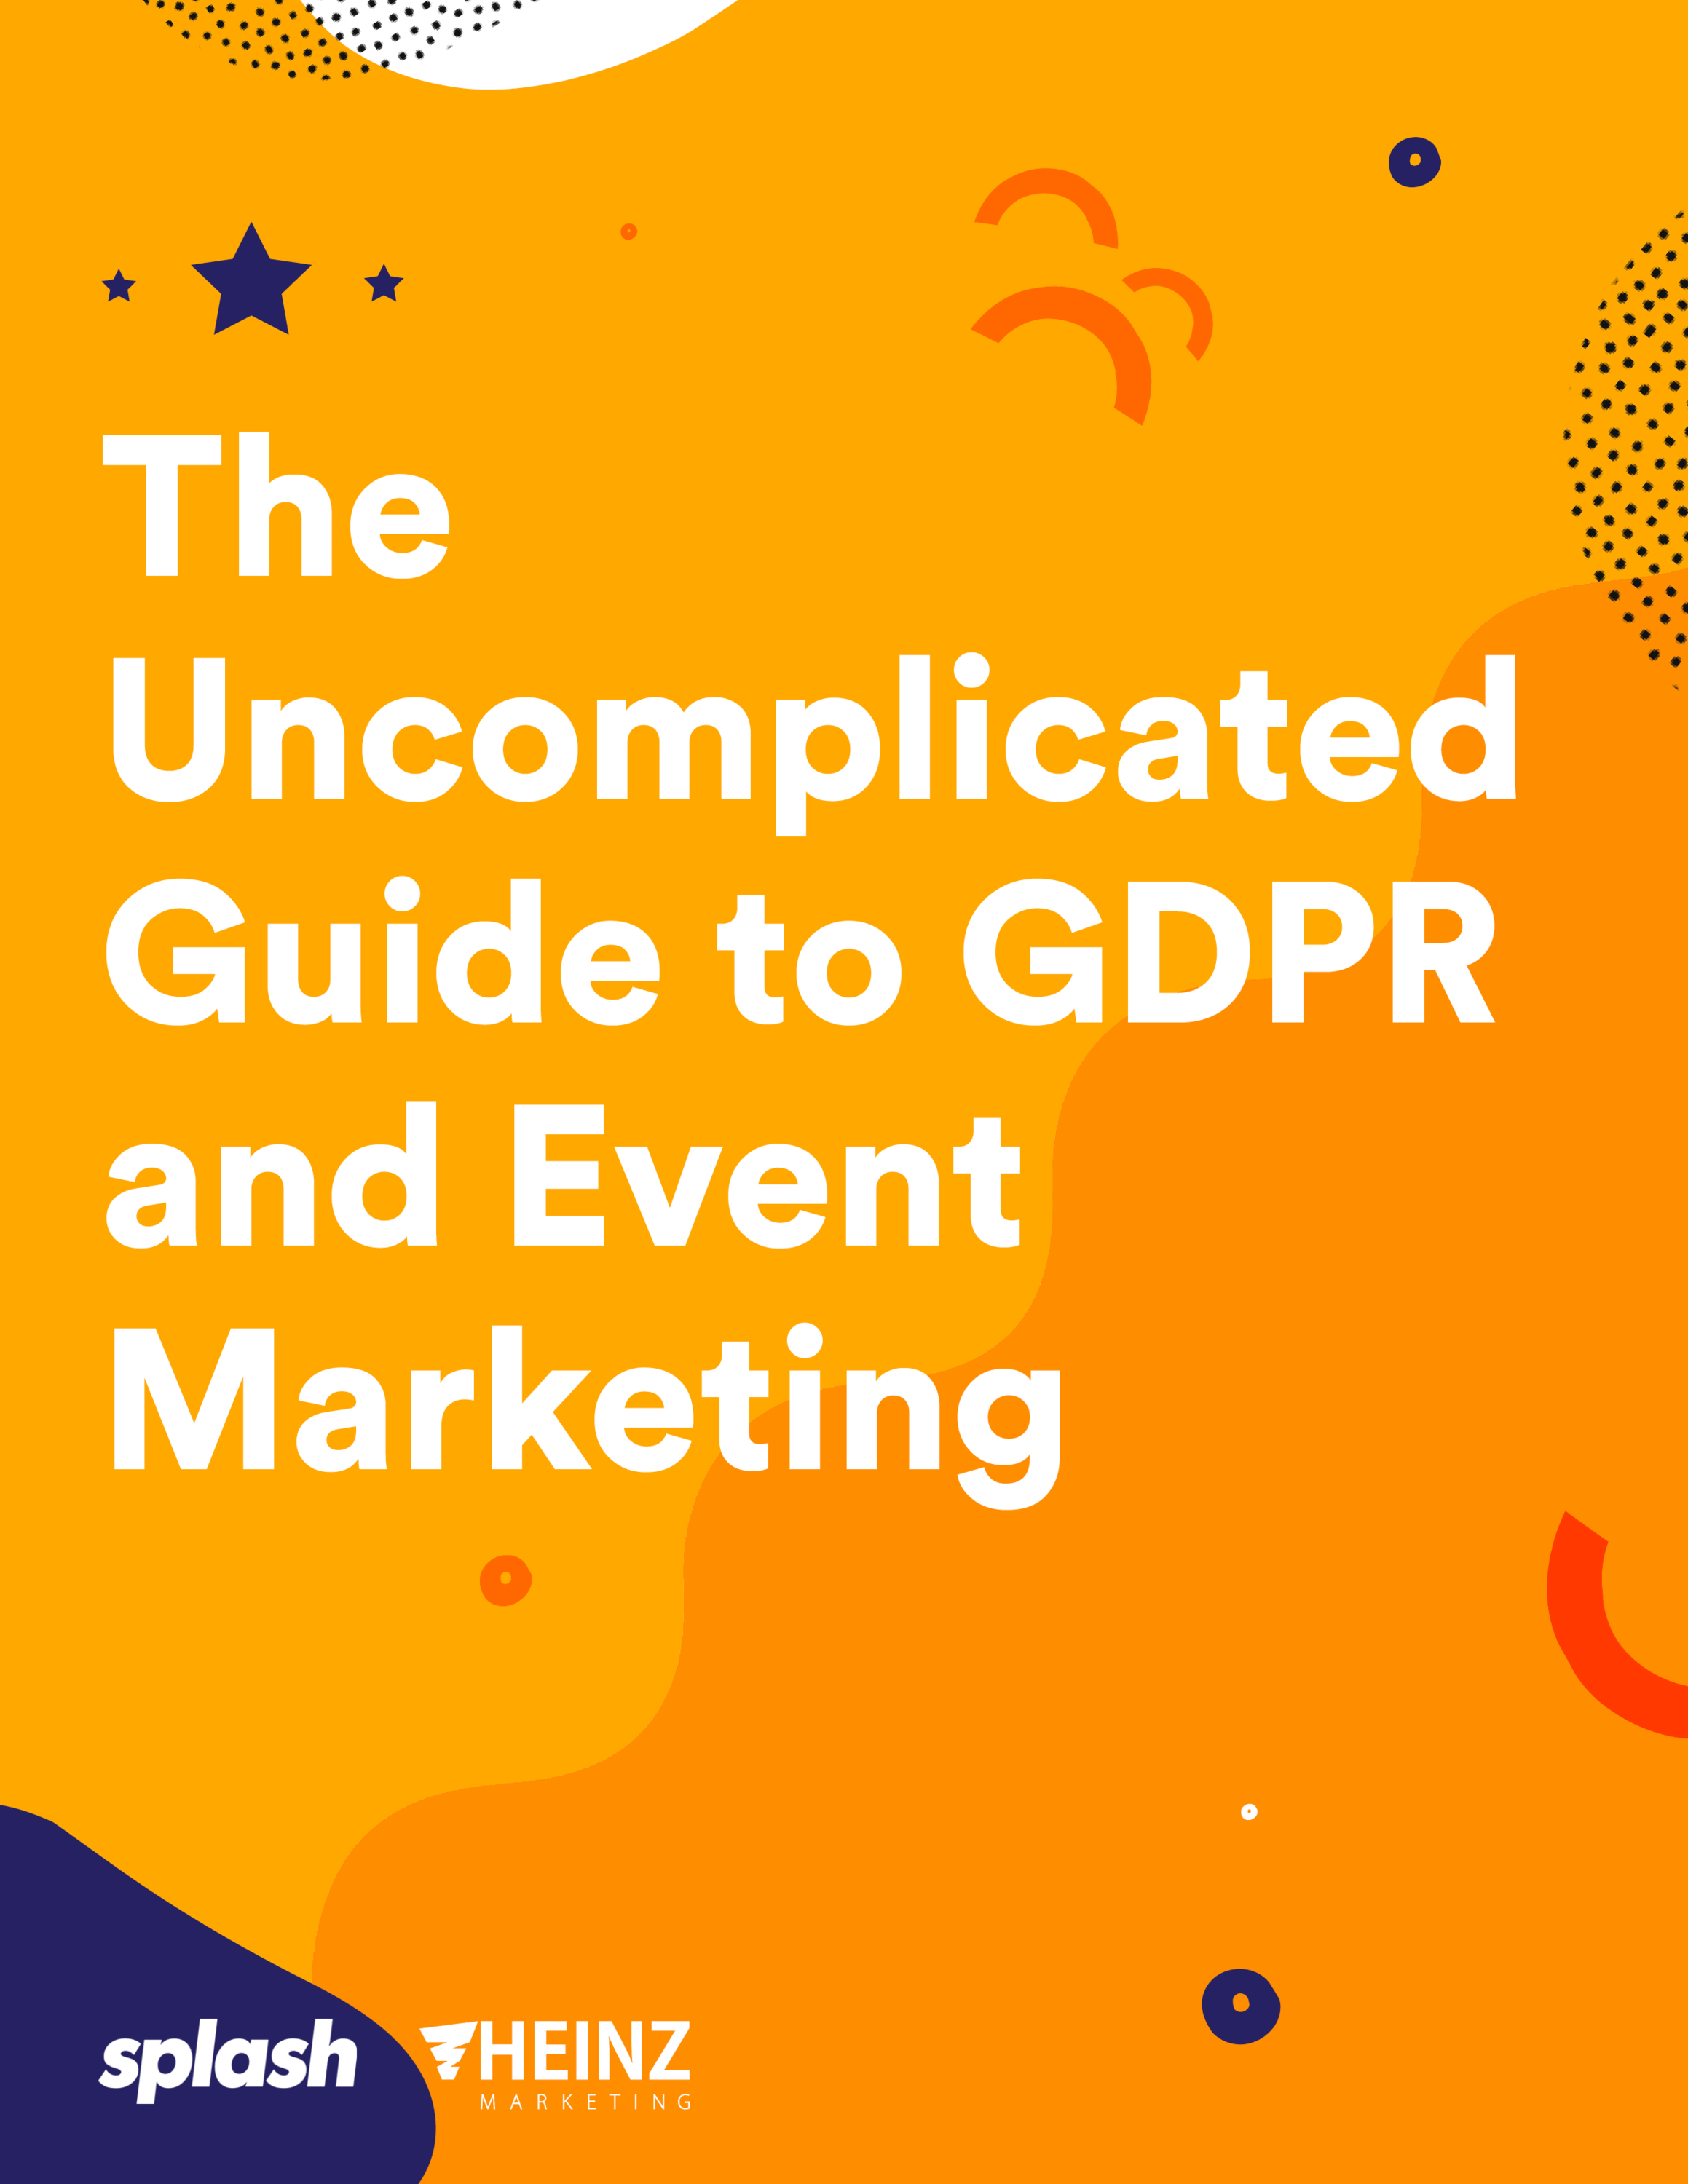 gdpr event marketing